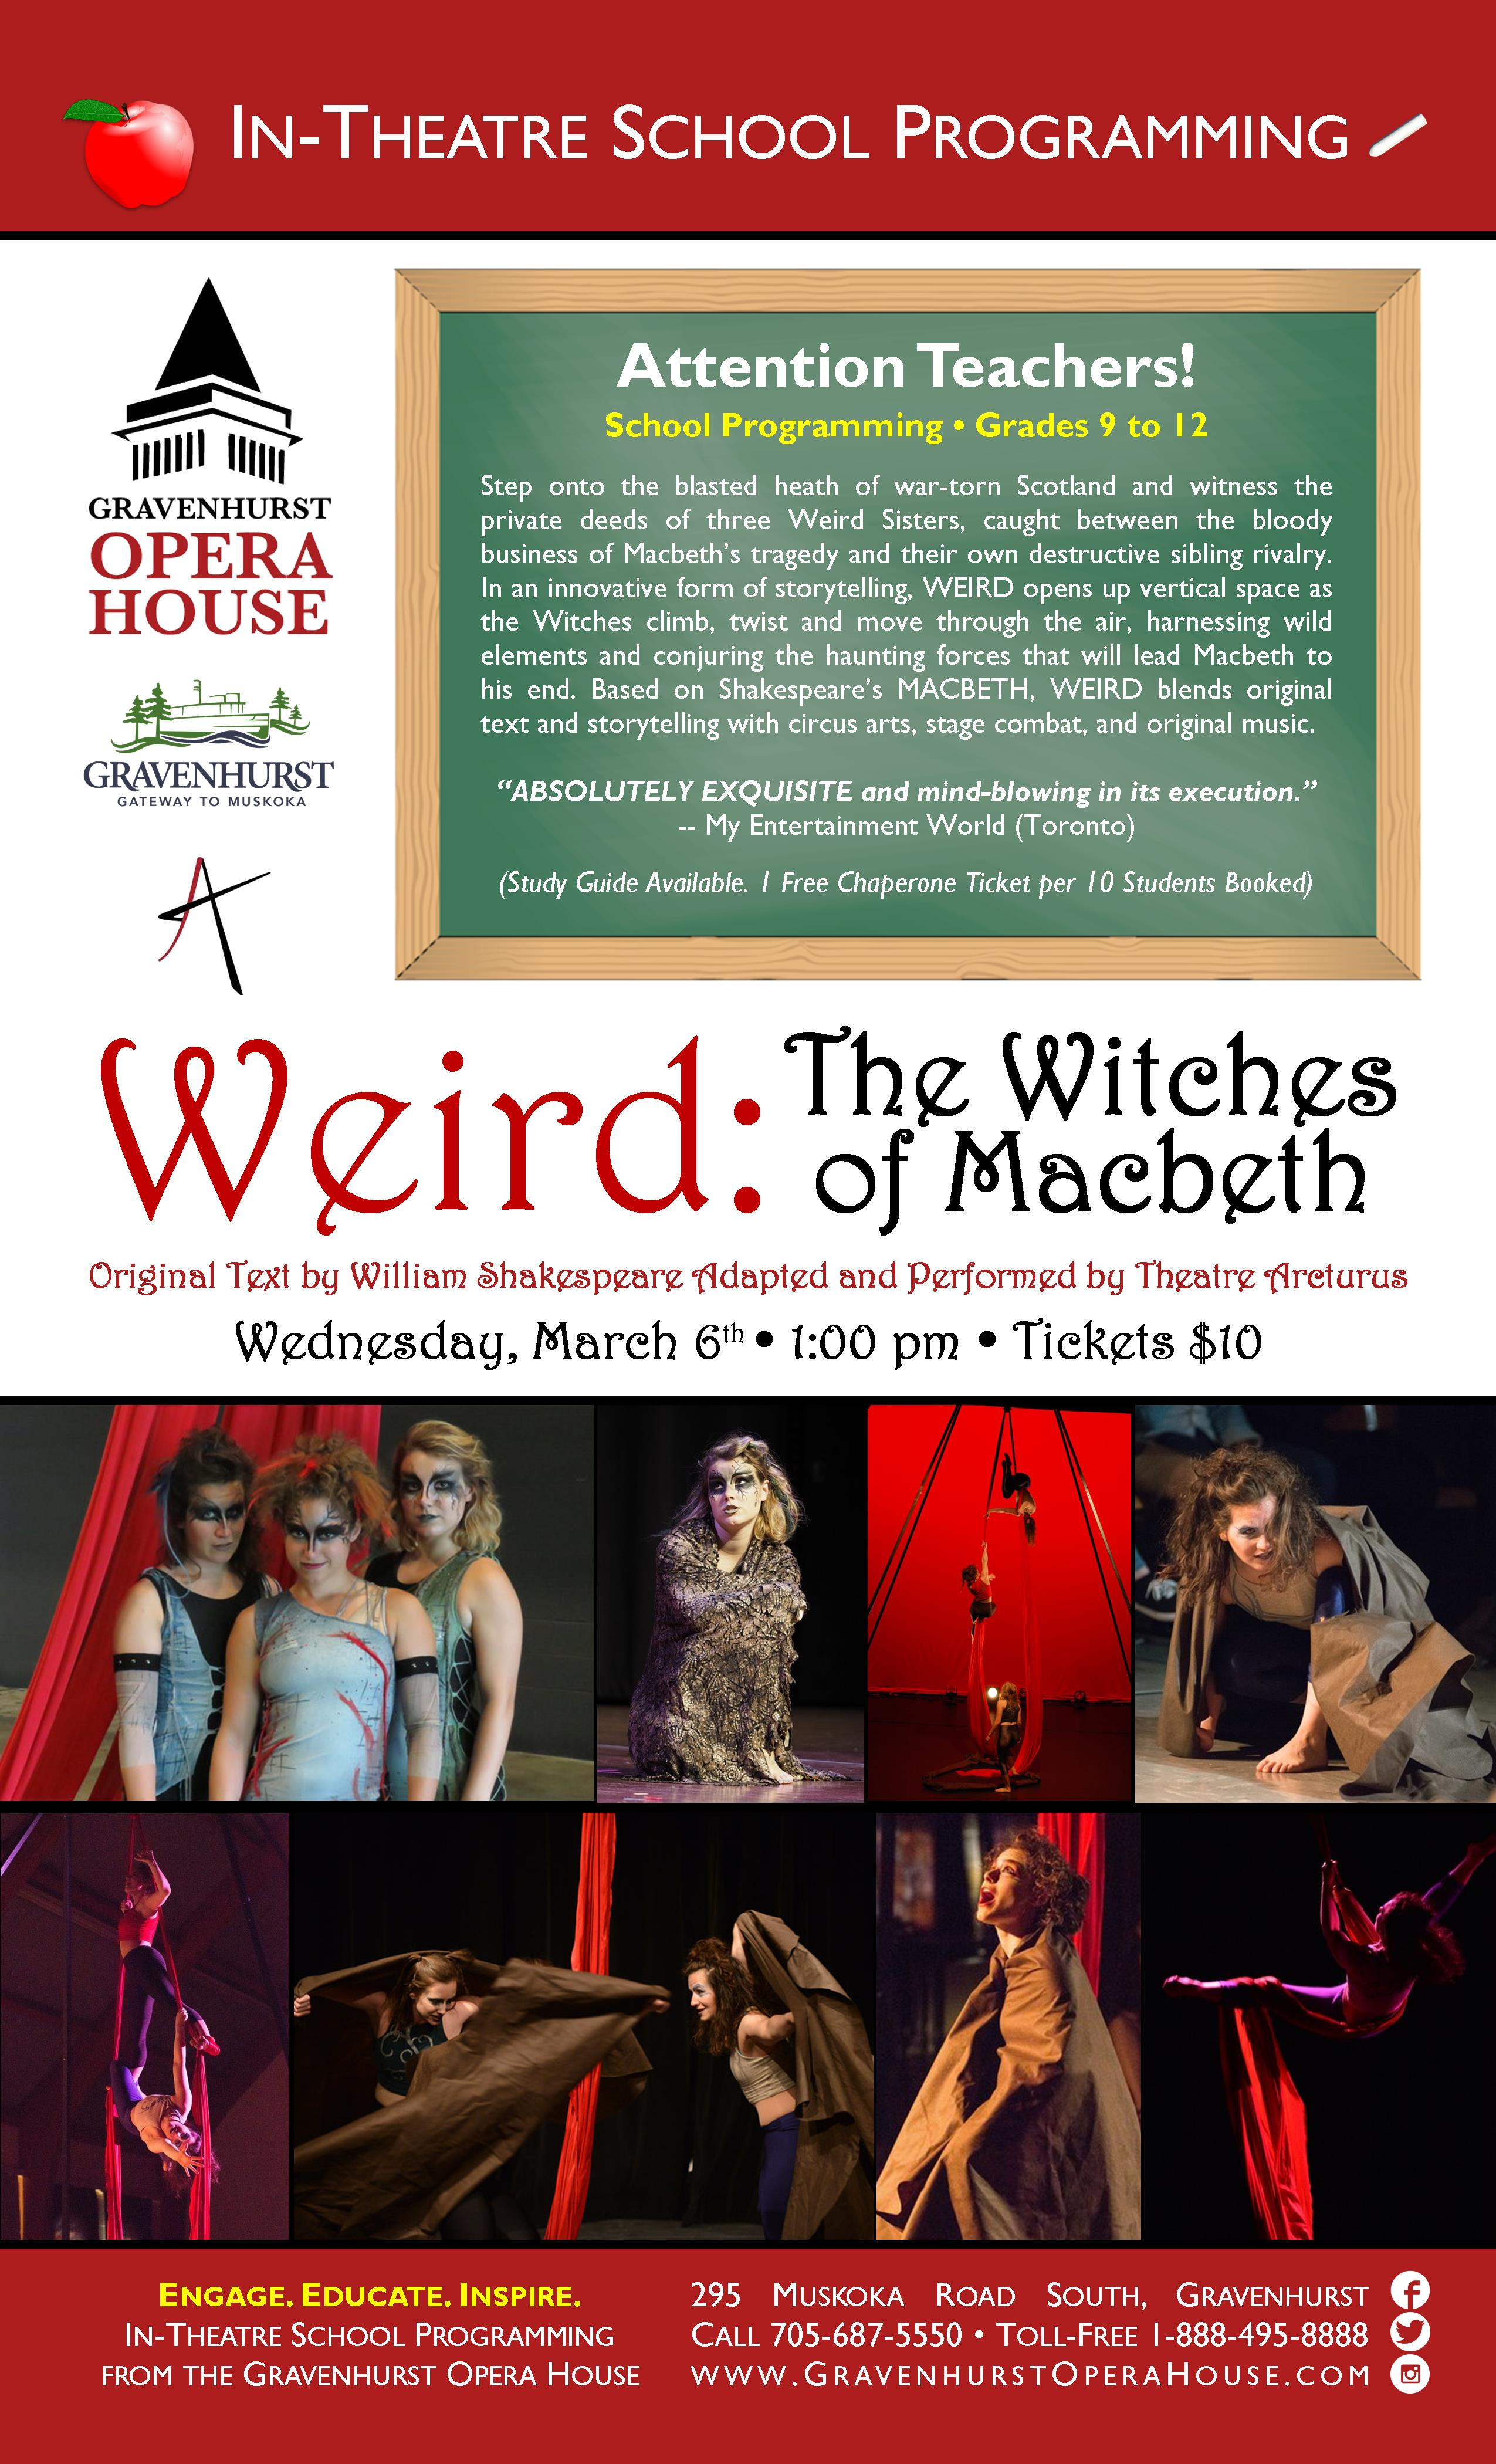 Promotional Poster for the upcoming school show Weird: The Witches of Macbeth on March 6th, 2019